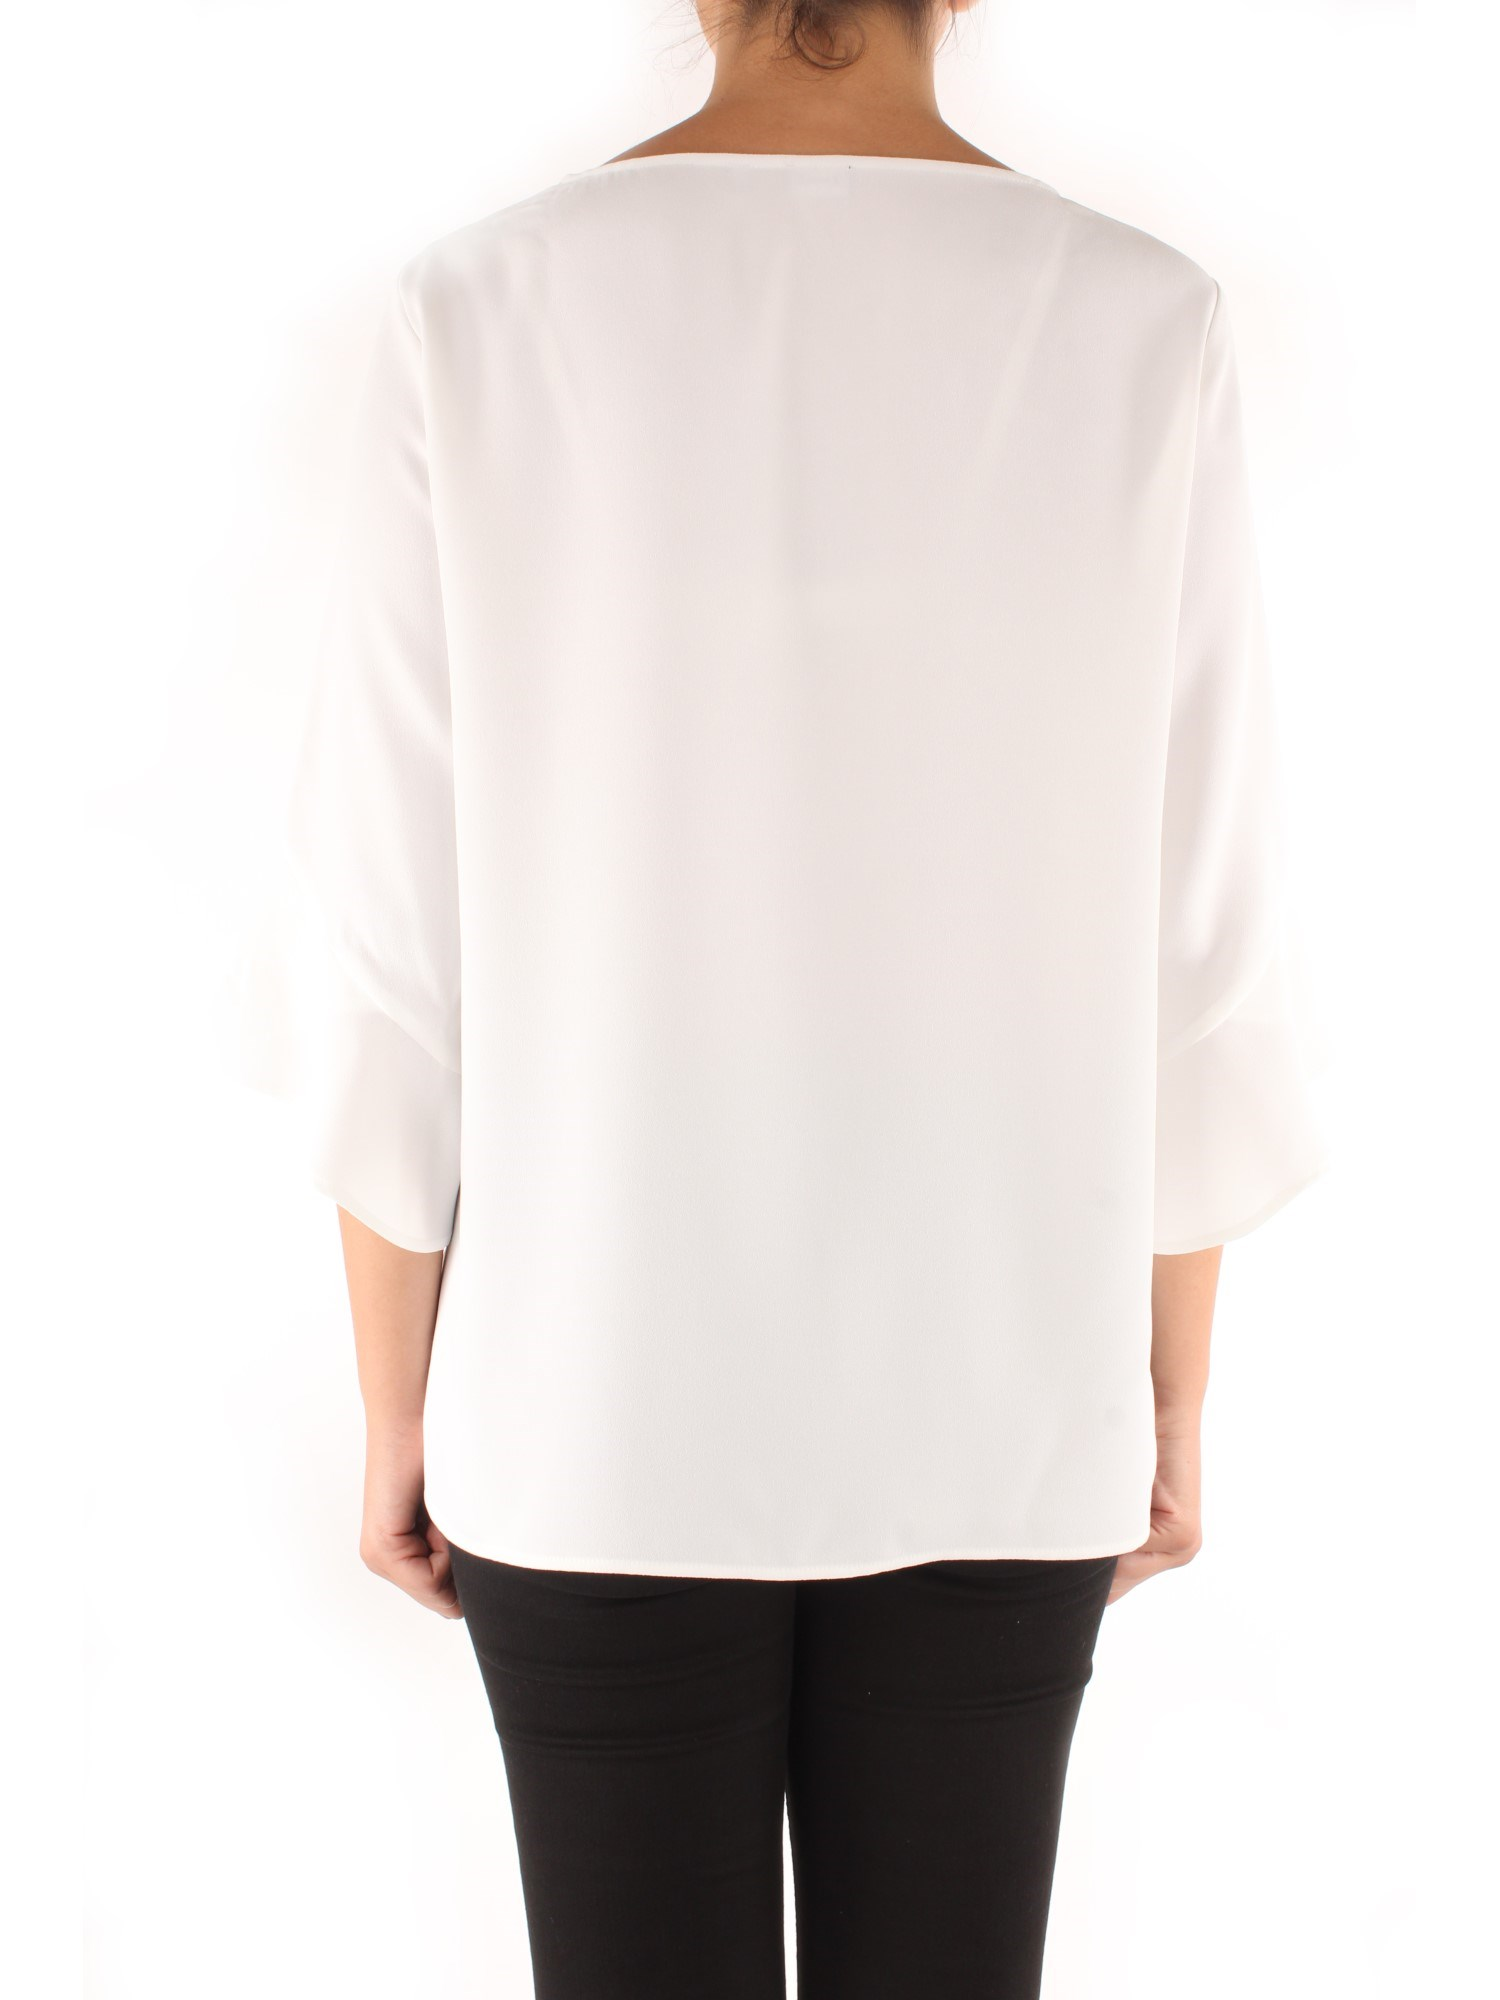 Emme Di Marella Clothing Women Jerseys WHITE CAROTA